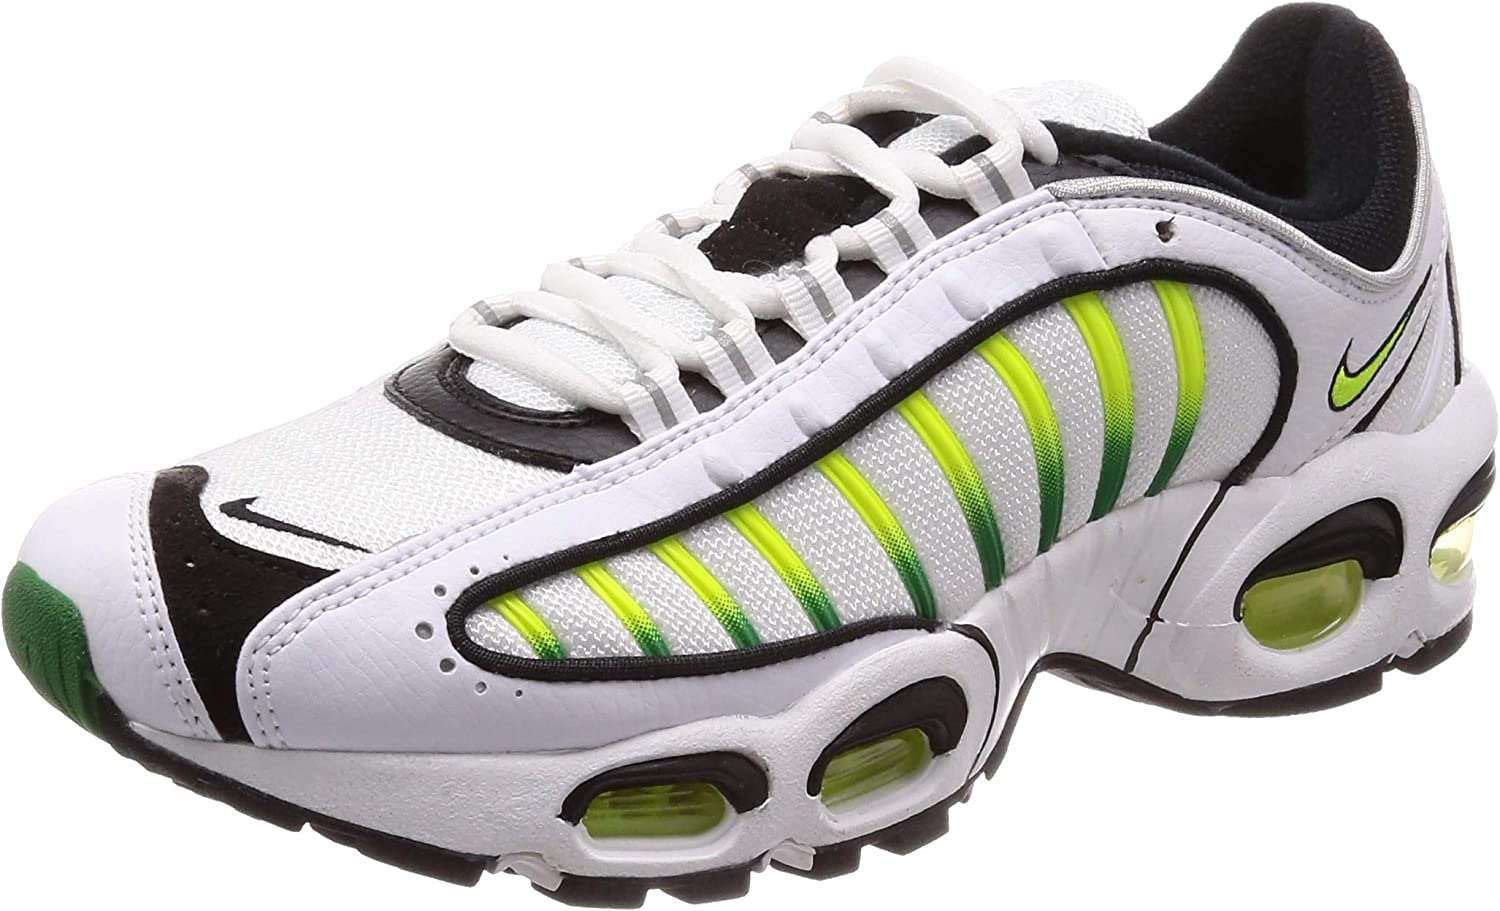 Nike Air Max Tailwind Iv, Chaussures d'Athlétisme Homme